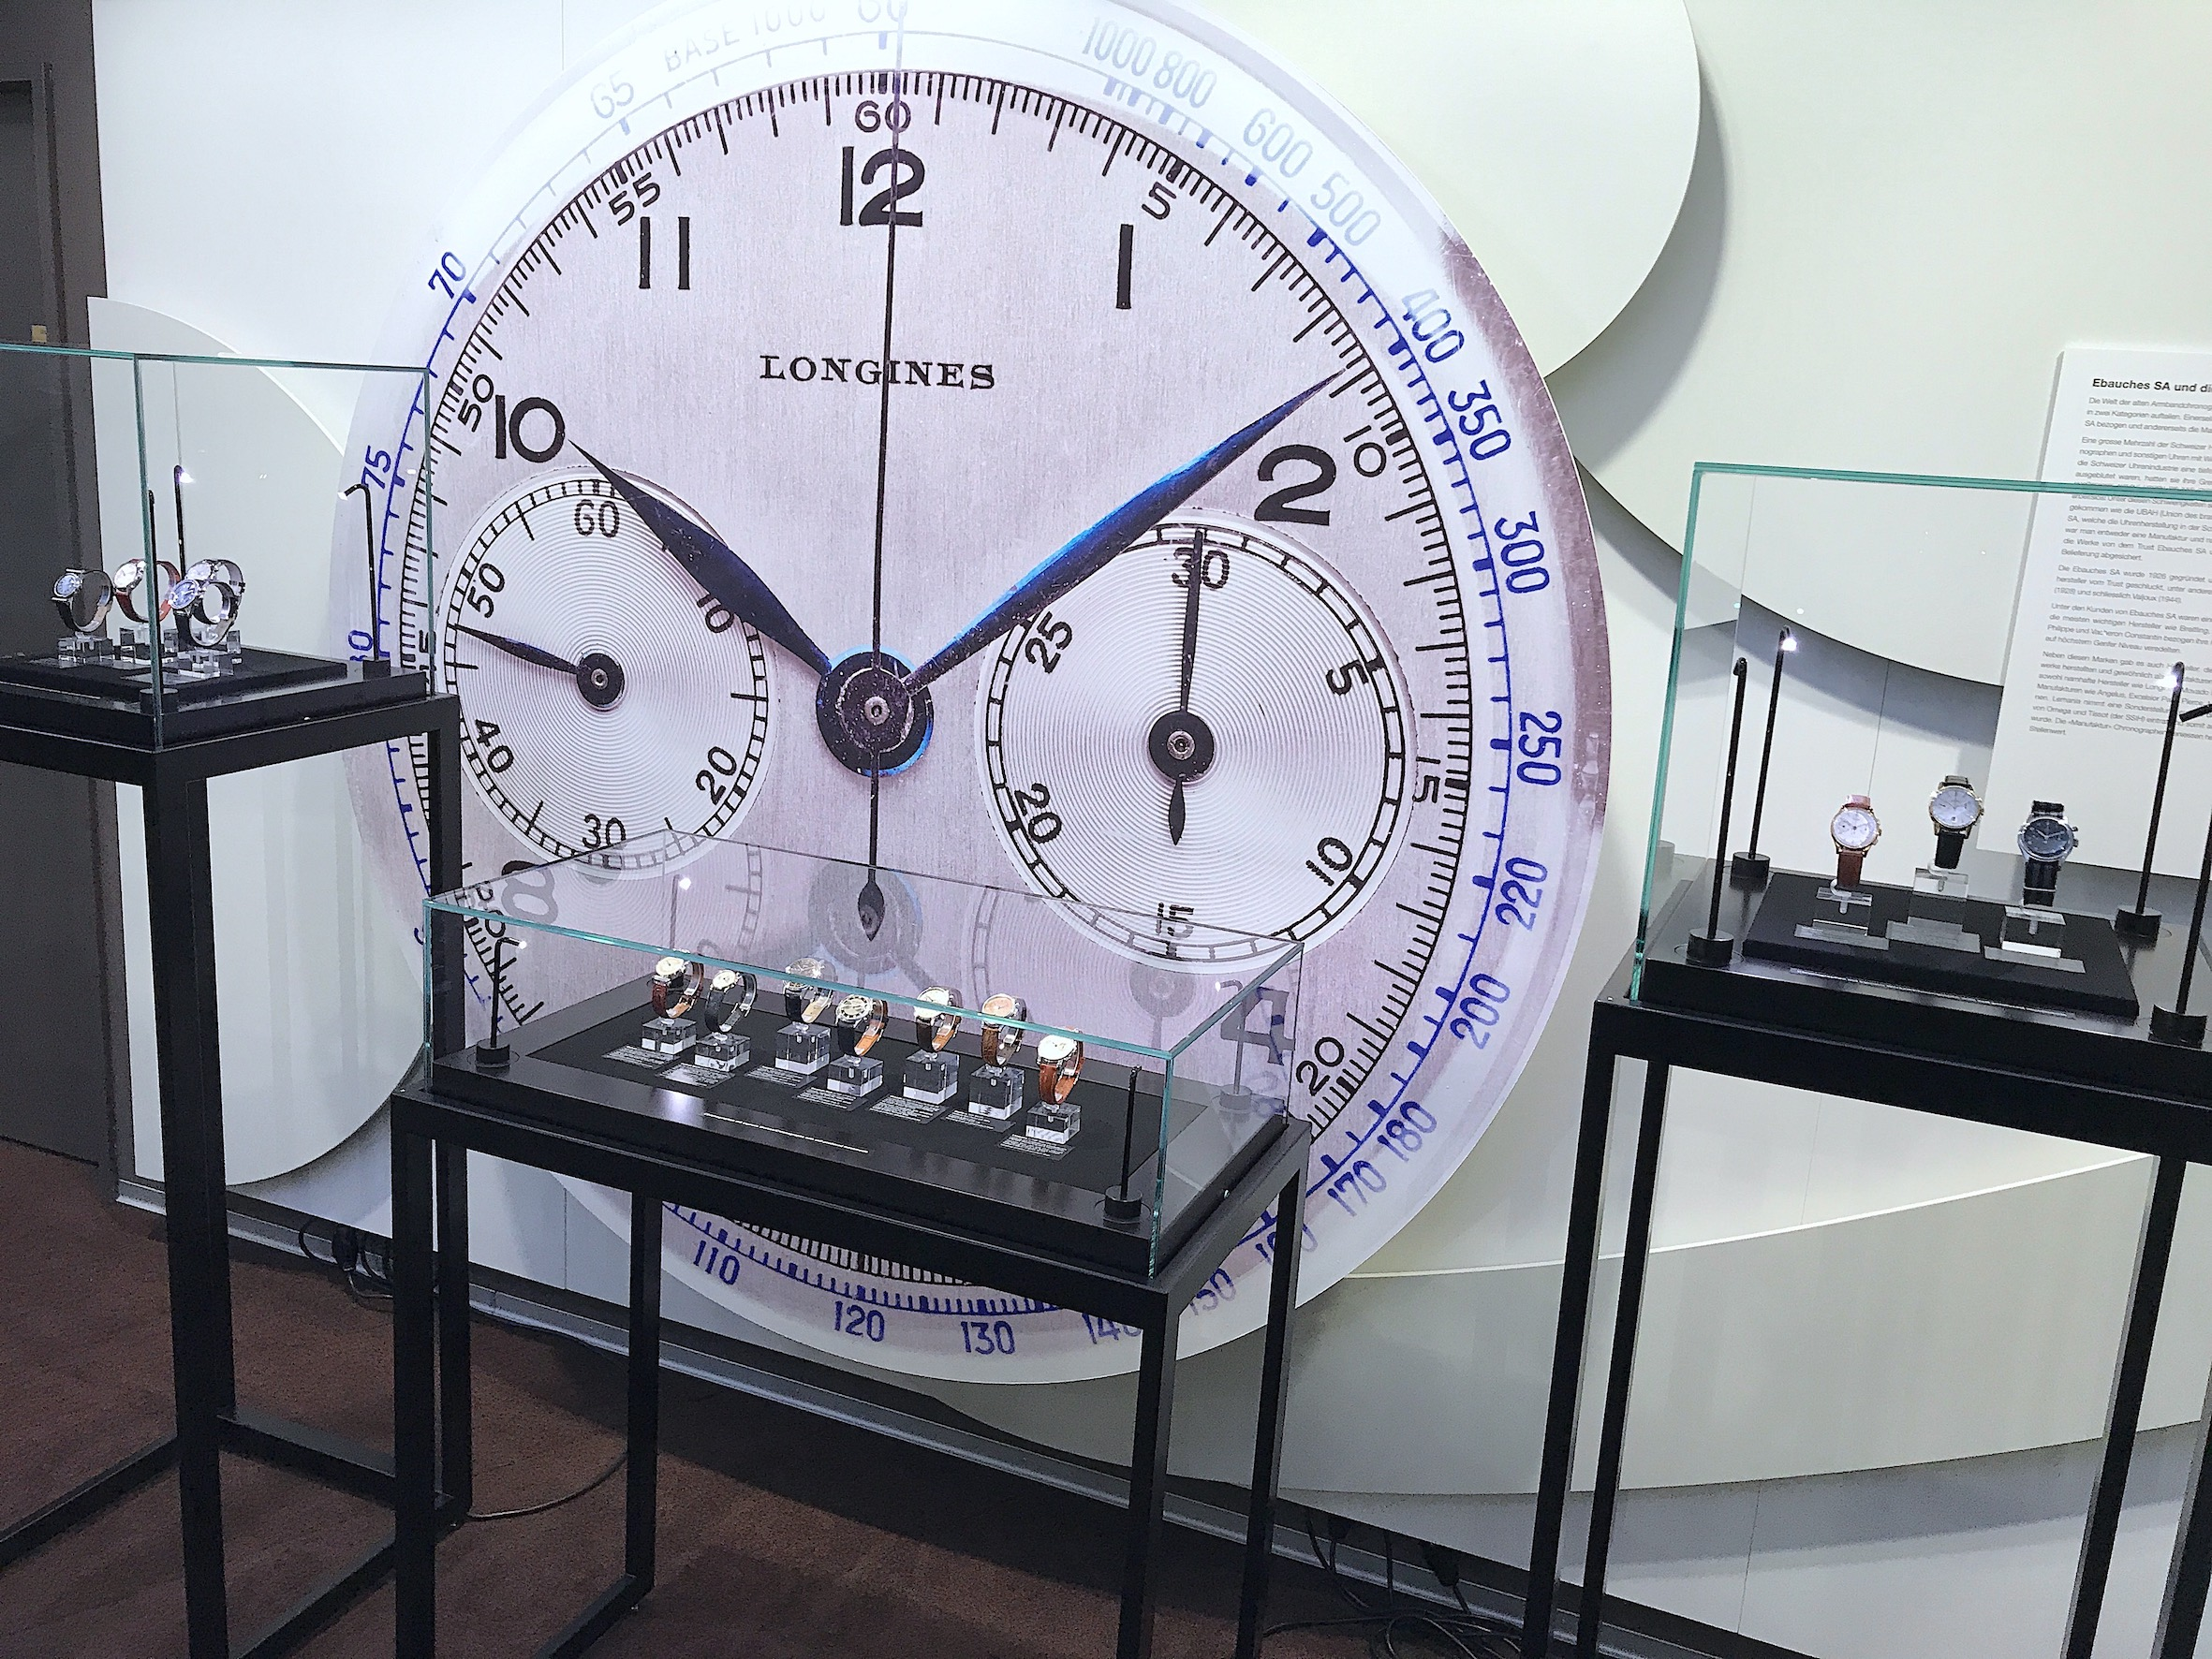 Beyer Clock and Watch Museum Exhibition Chronograph in the course of time